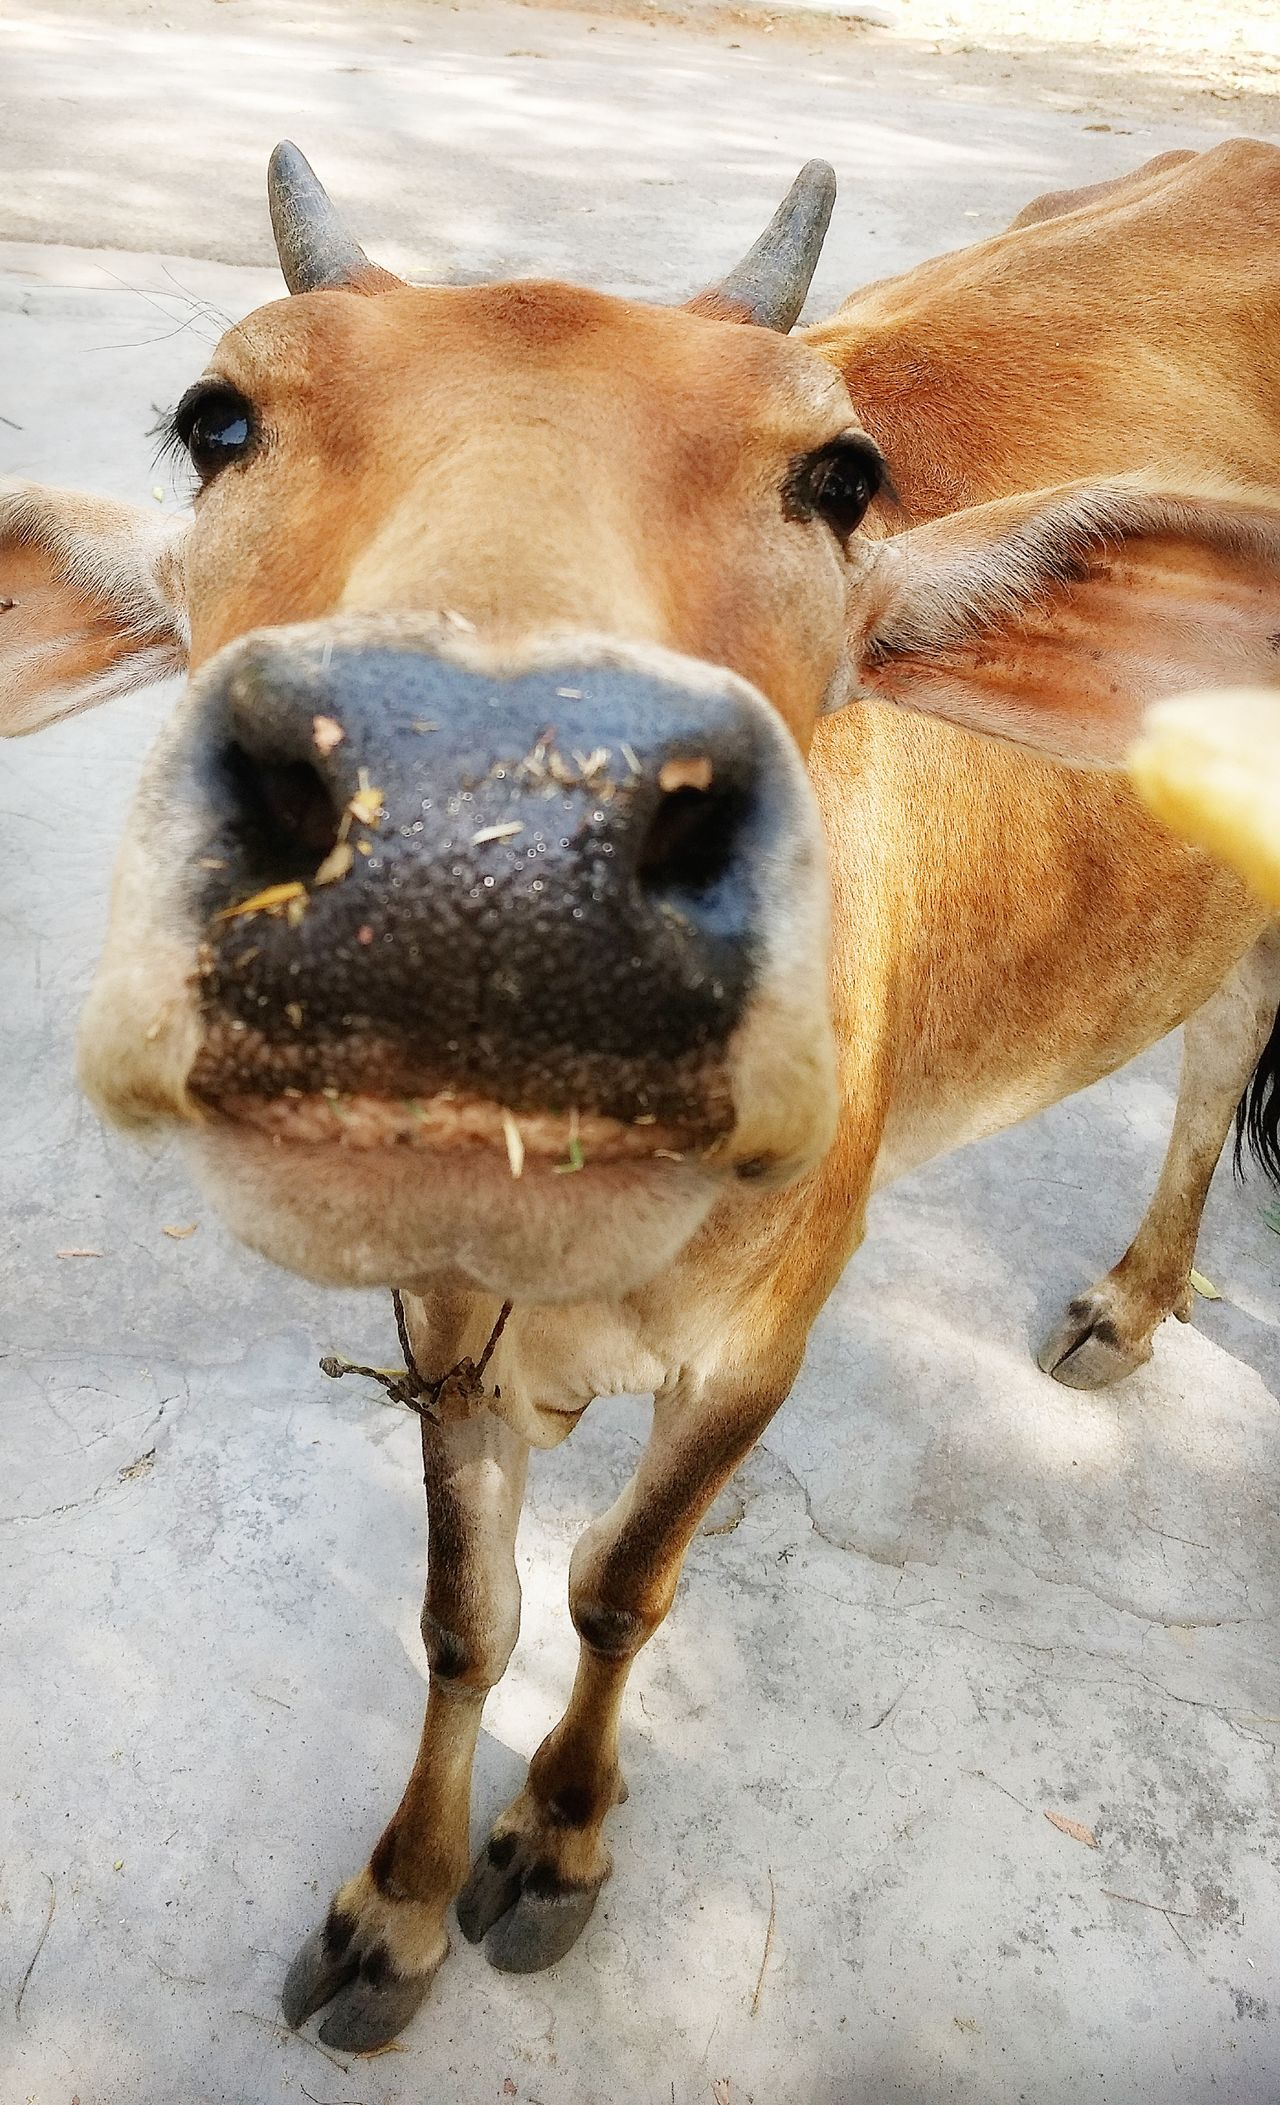 Bovine Cows🐮 Close Up Shot Vintage❤ Break The Mold EyeEmNewHere